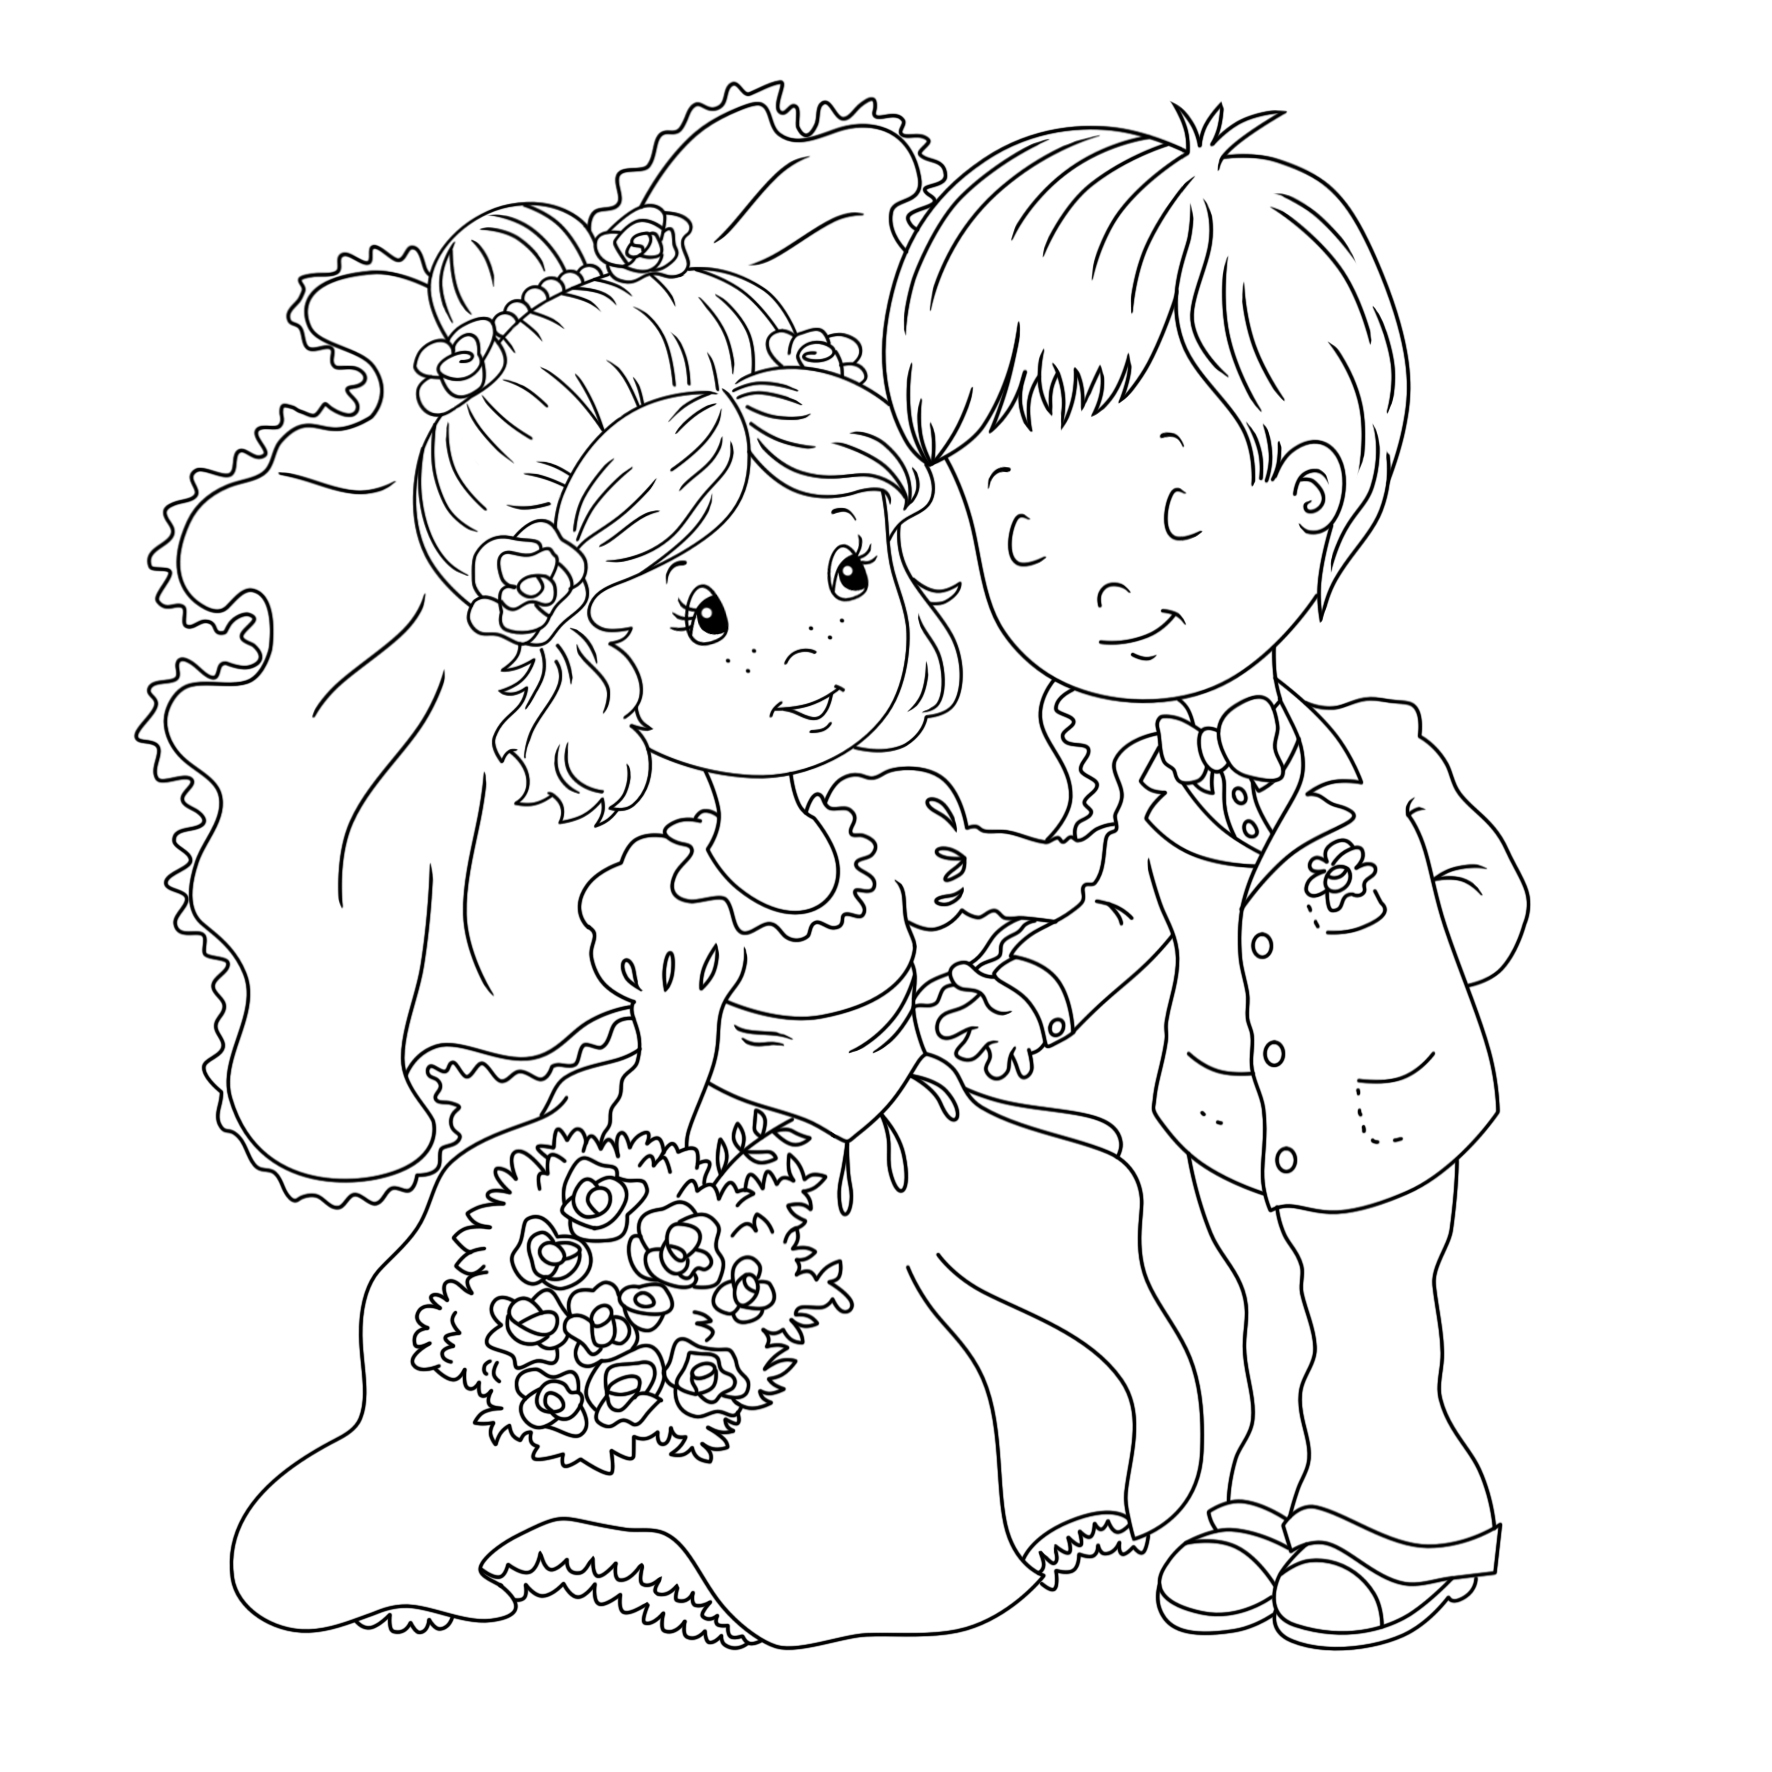 Wedding coloring pages best coloring pages for kids for Wedding coloring pages to print